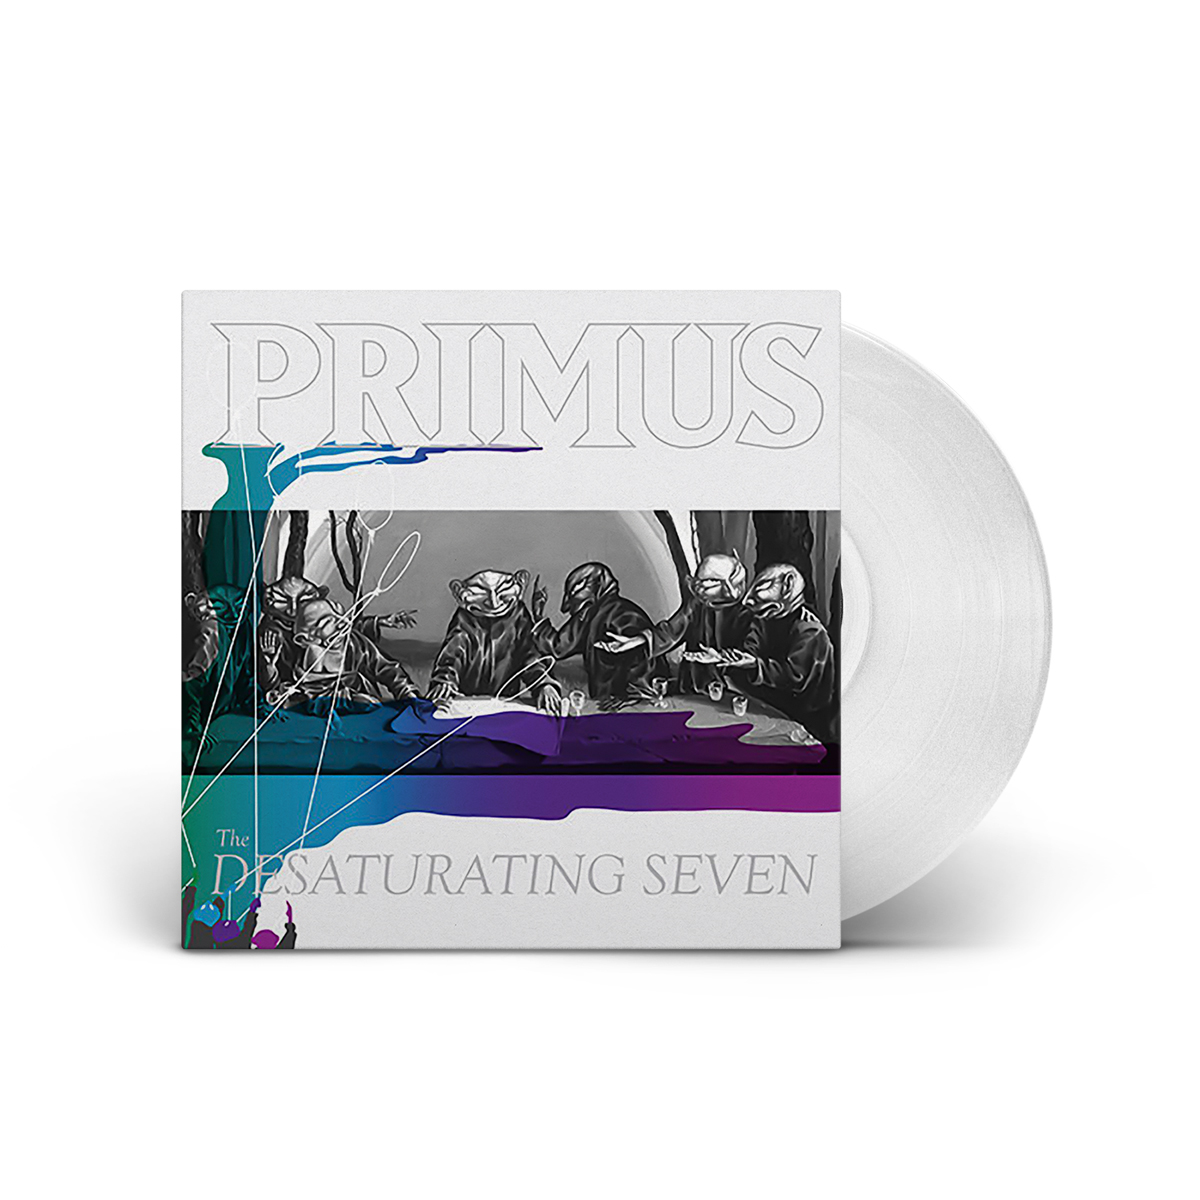 "Primus – The Desaturating Seven- Limited Edition ""Desaturated"" Vinyl"